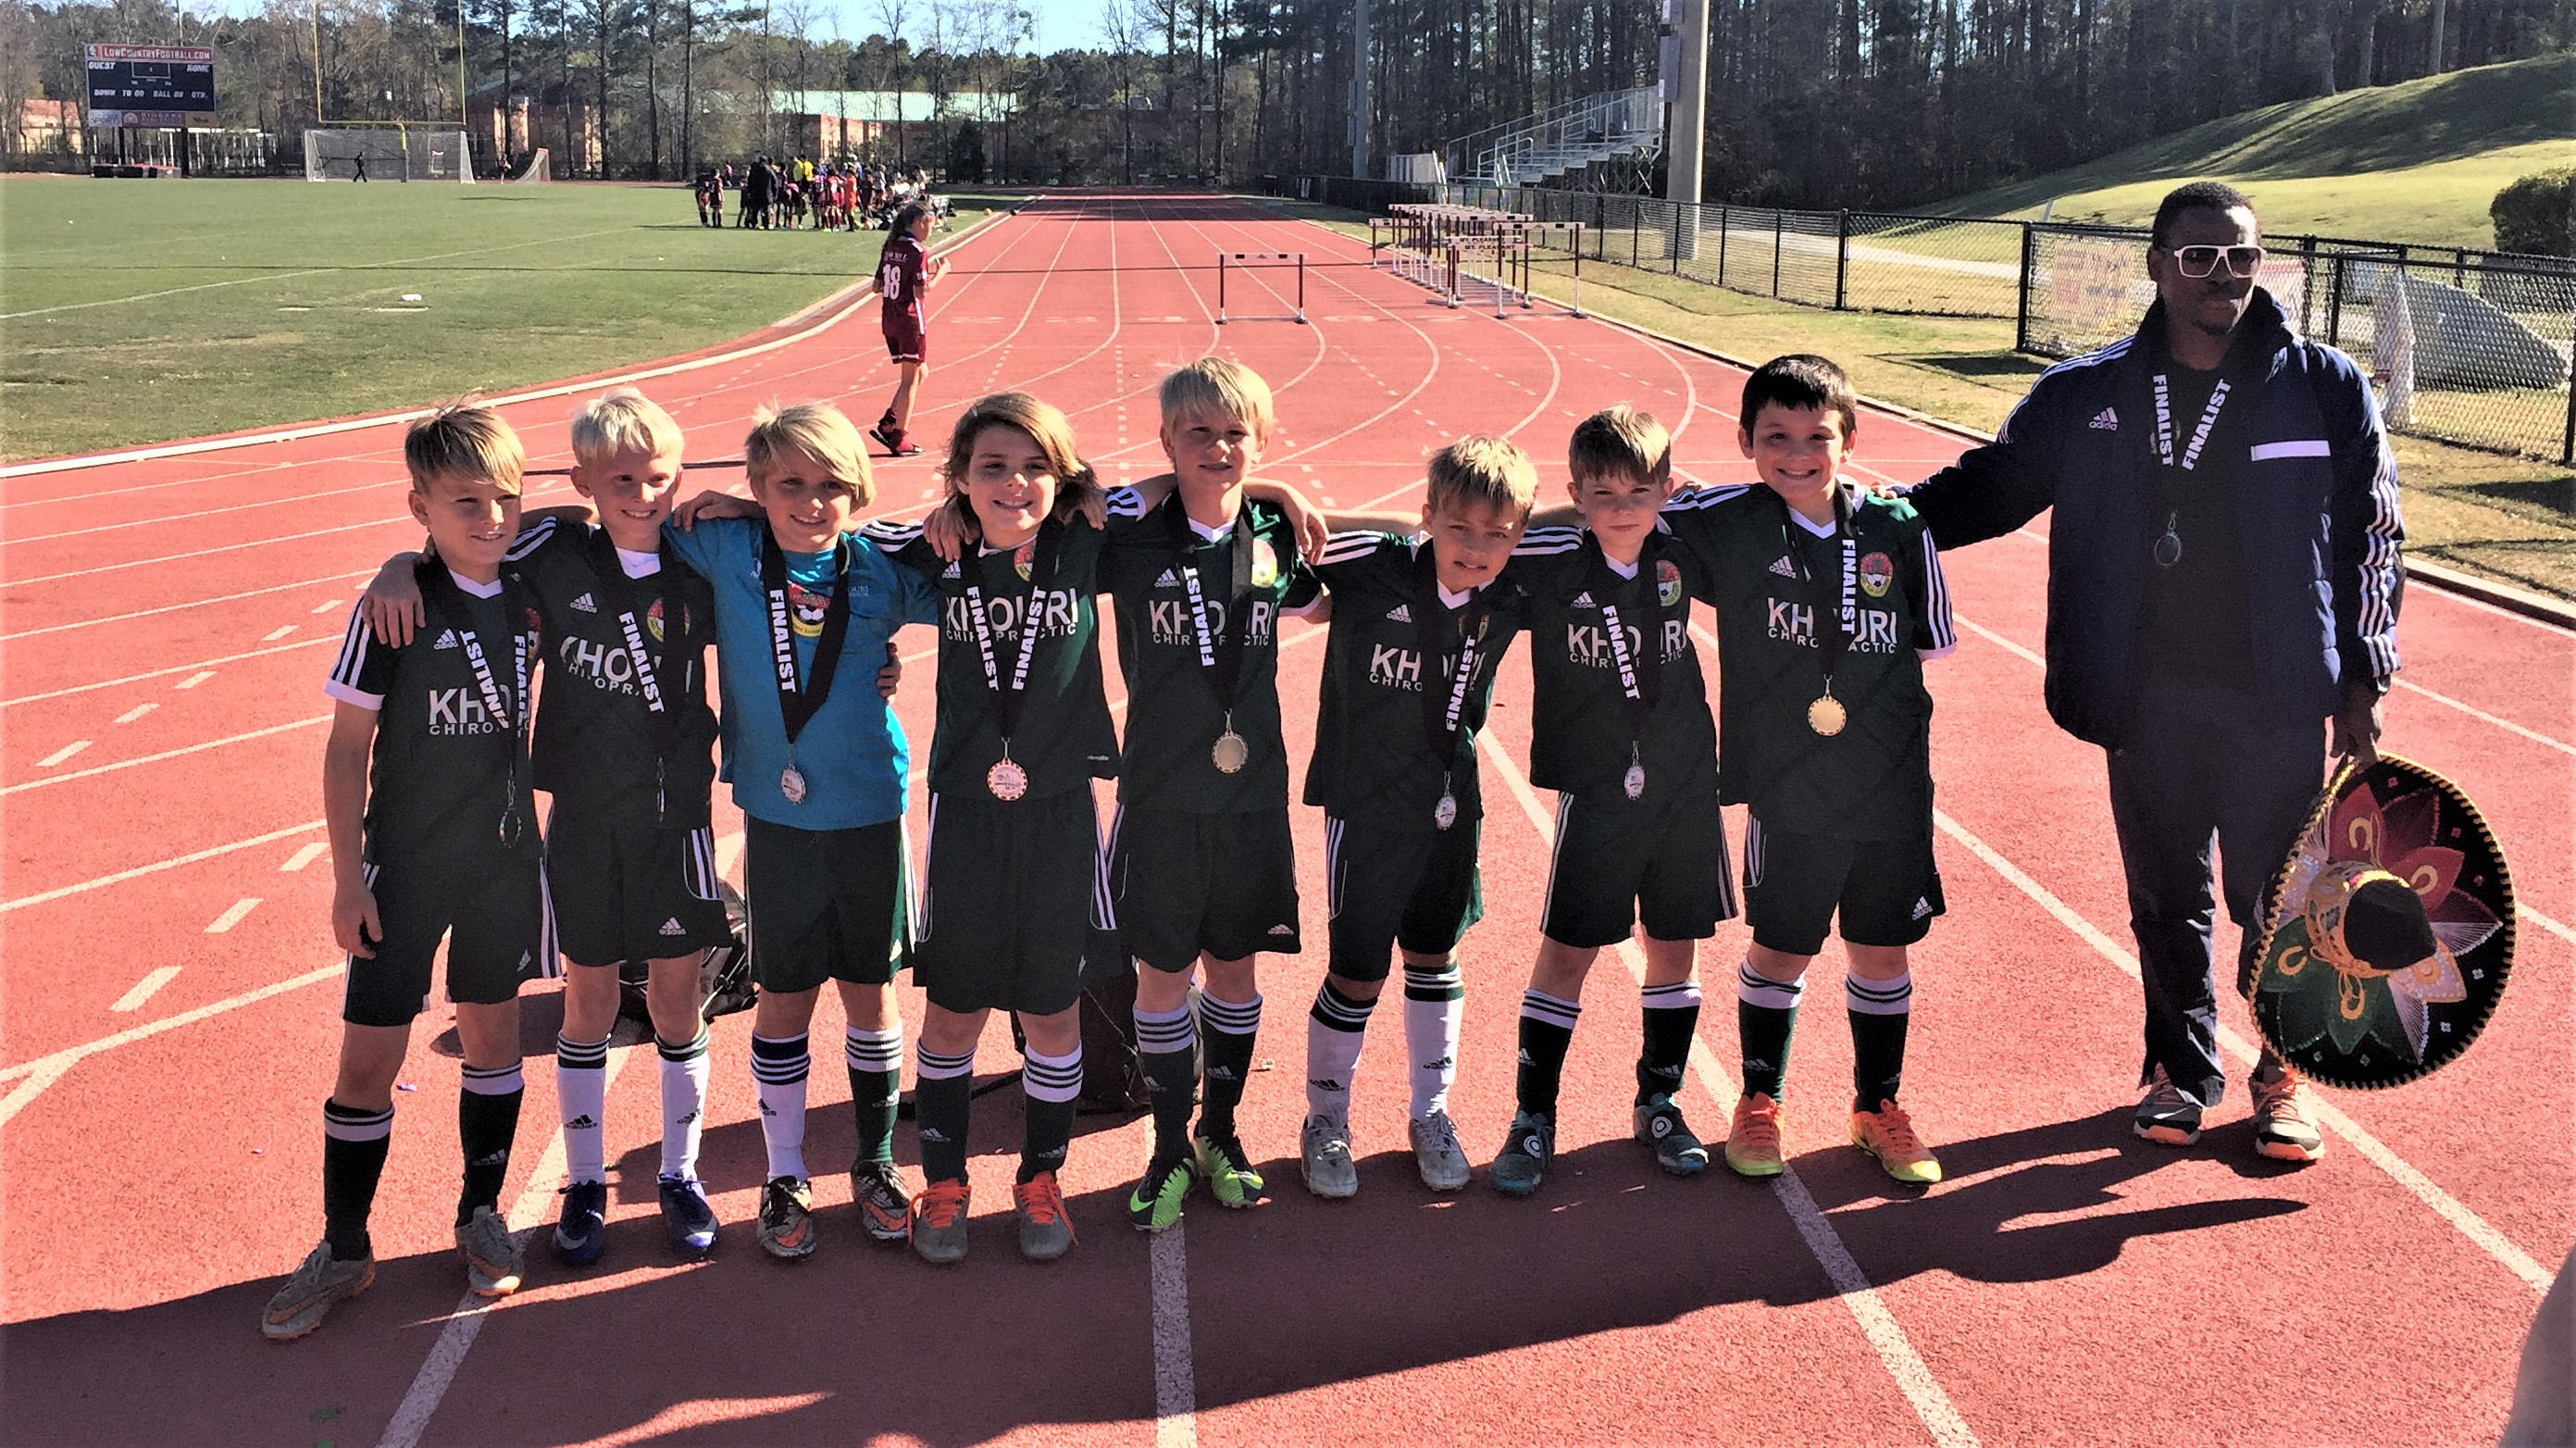 U10 Liverpool (DISA) Left to right: Max George, Lars Meeker, Corbin Driggers, Sean Herndon, Robby Ryan, Miles Surratt, Reed Swanson, Brody Tonon, and Coach Robert Naskahare.